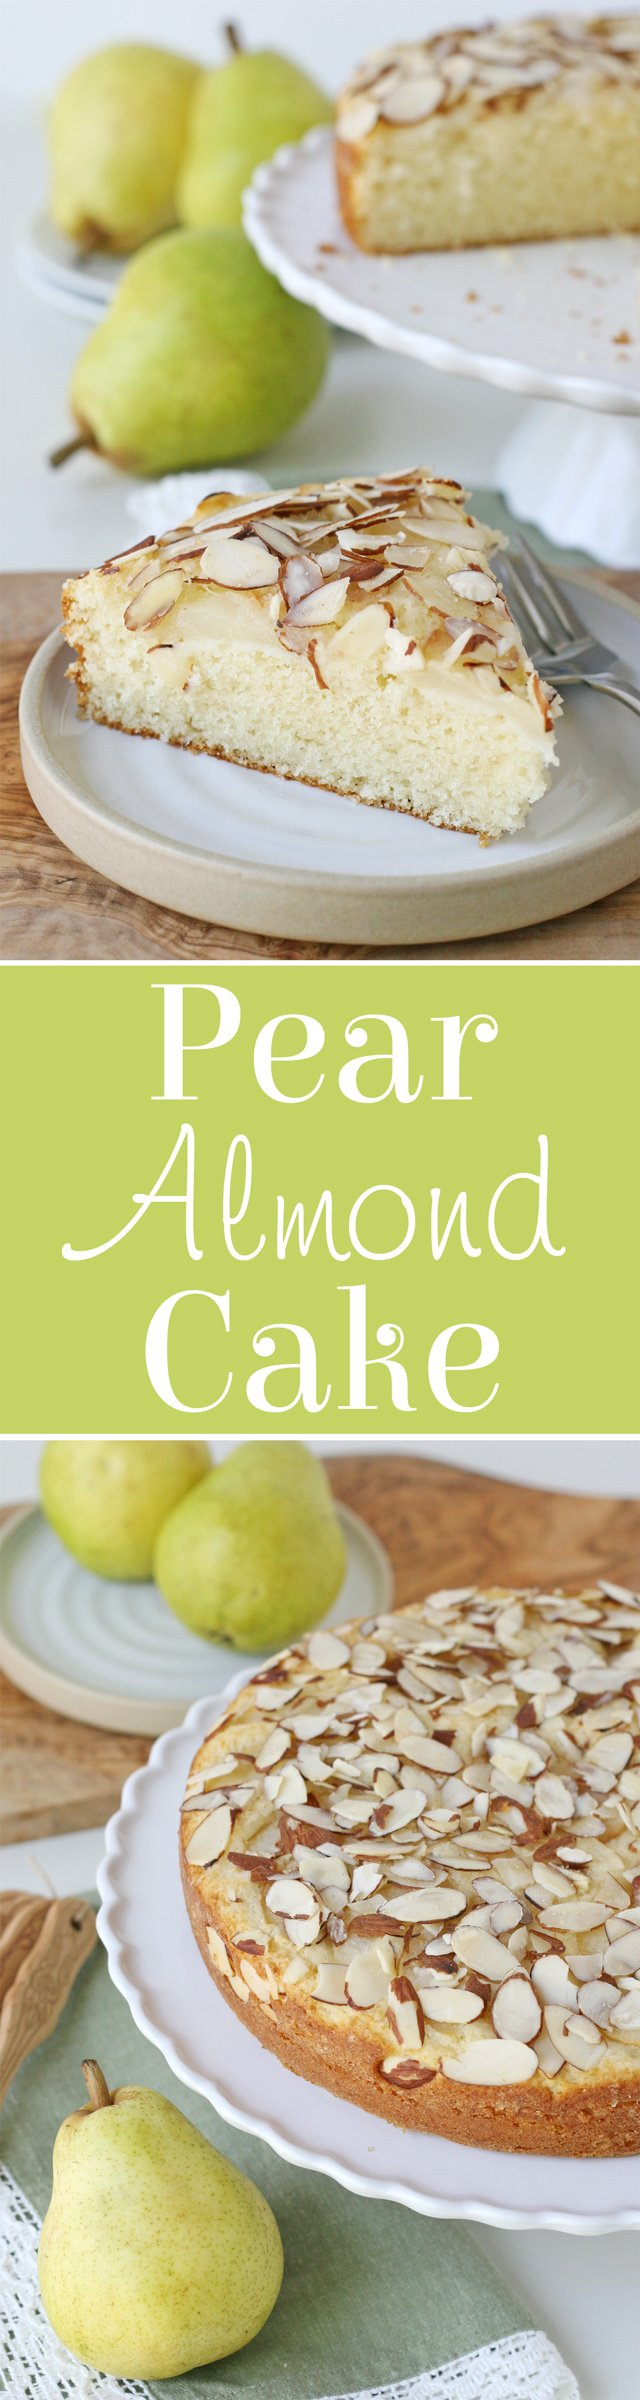 Chocolate Chip Pear Almond Cake